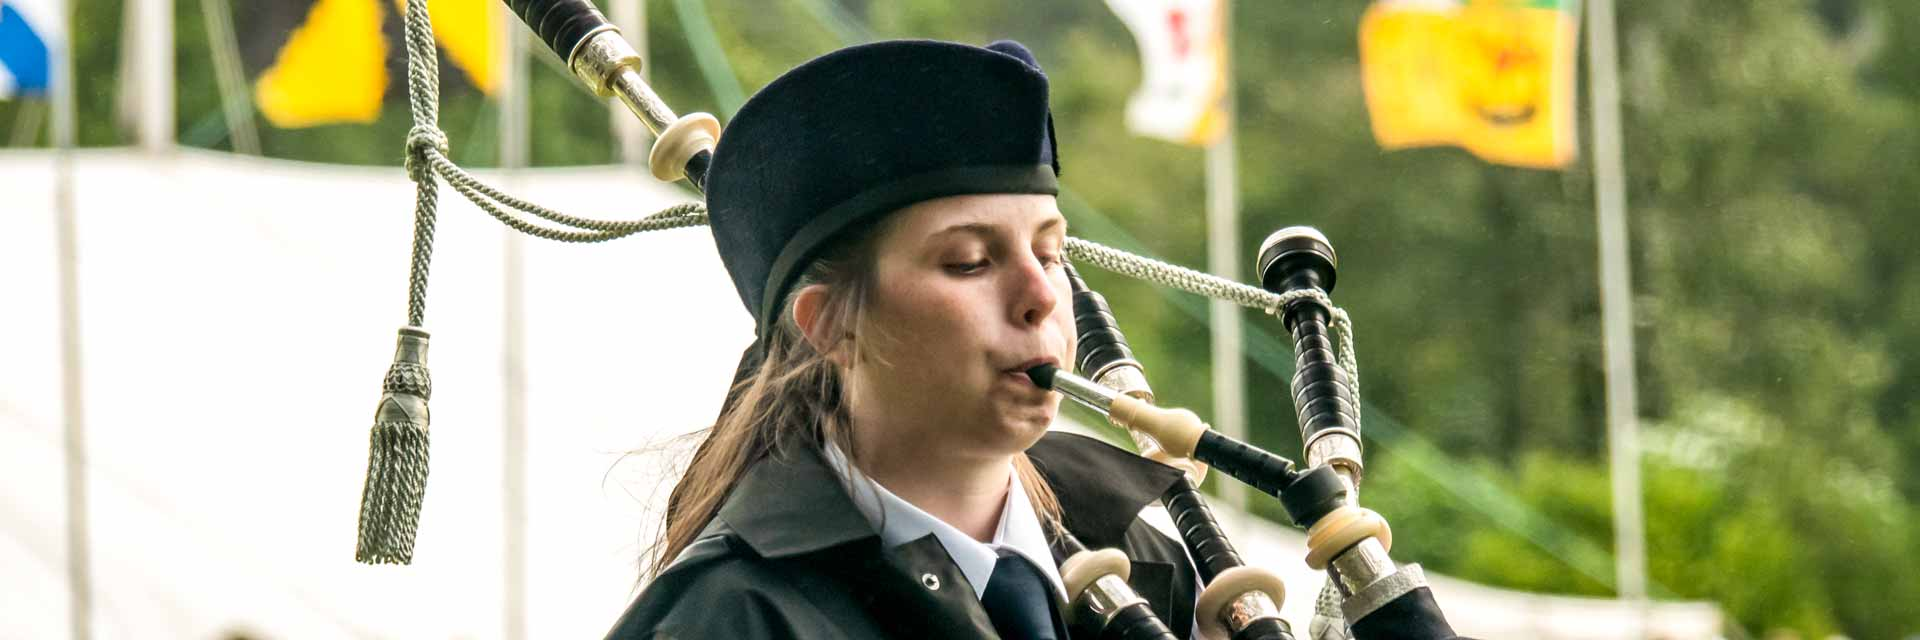 Argyllshire Gathering Piping Competition - two days of piping excellence